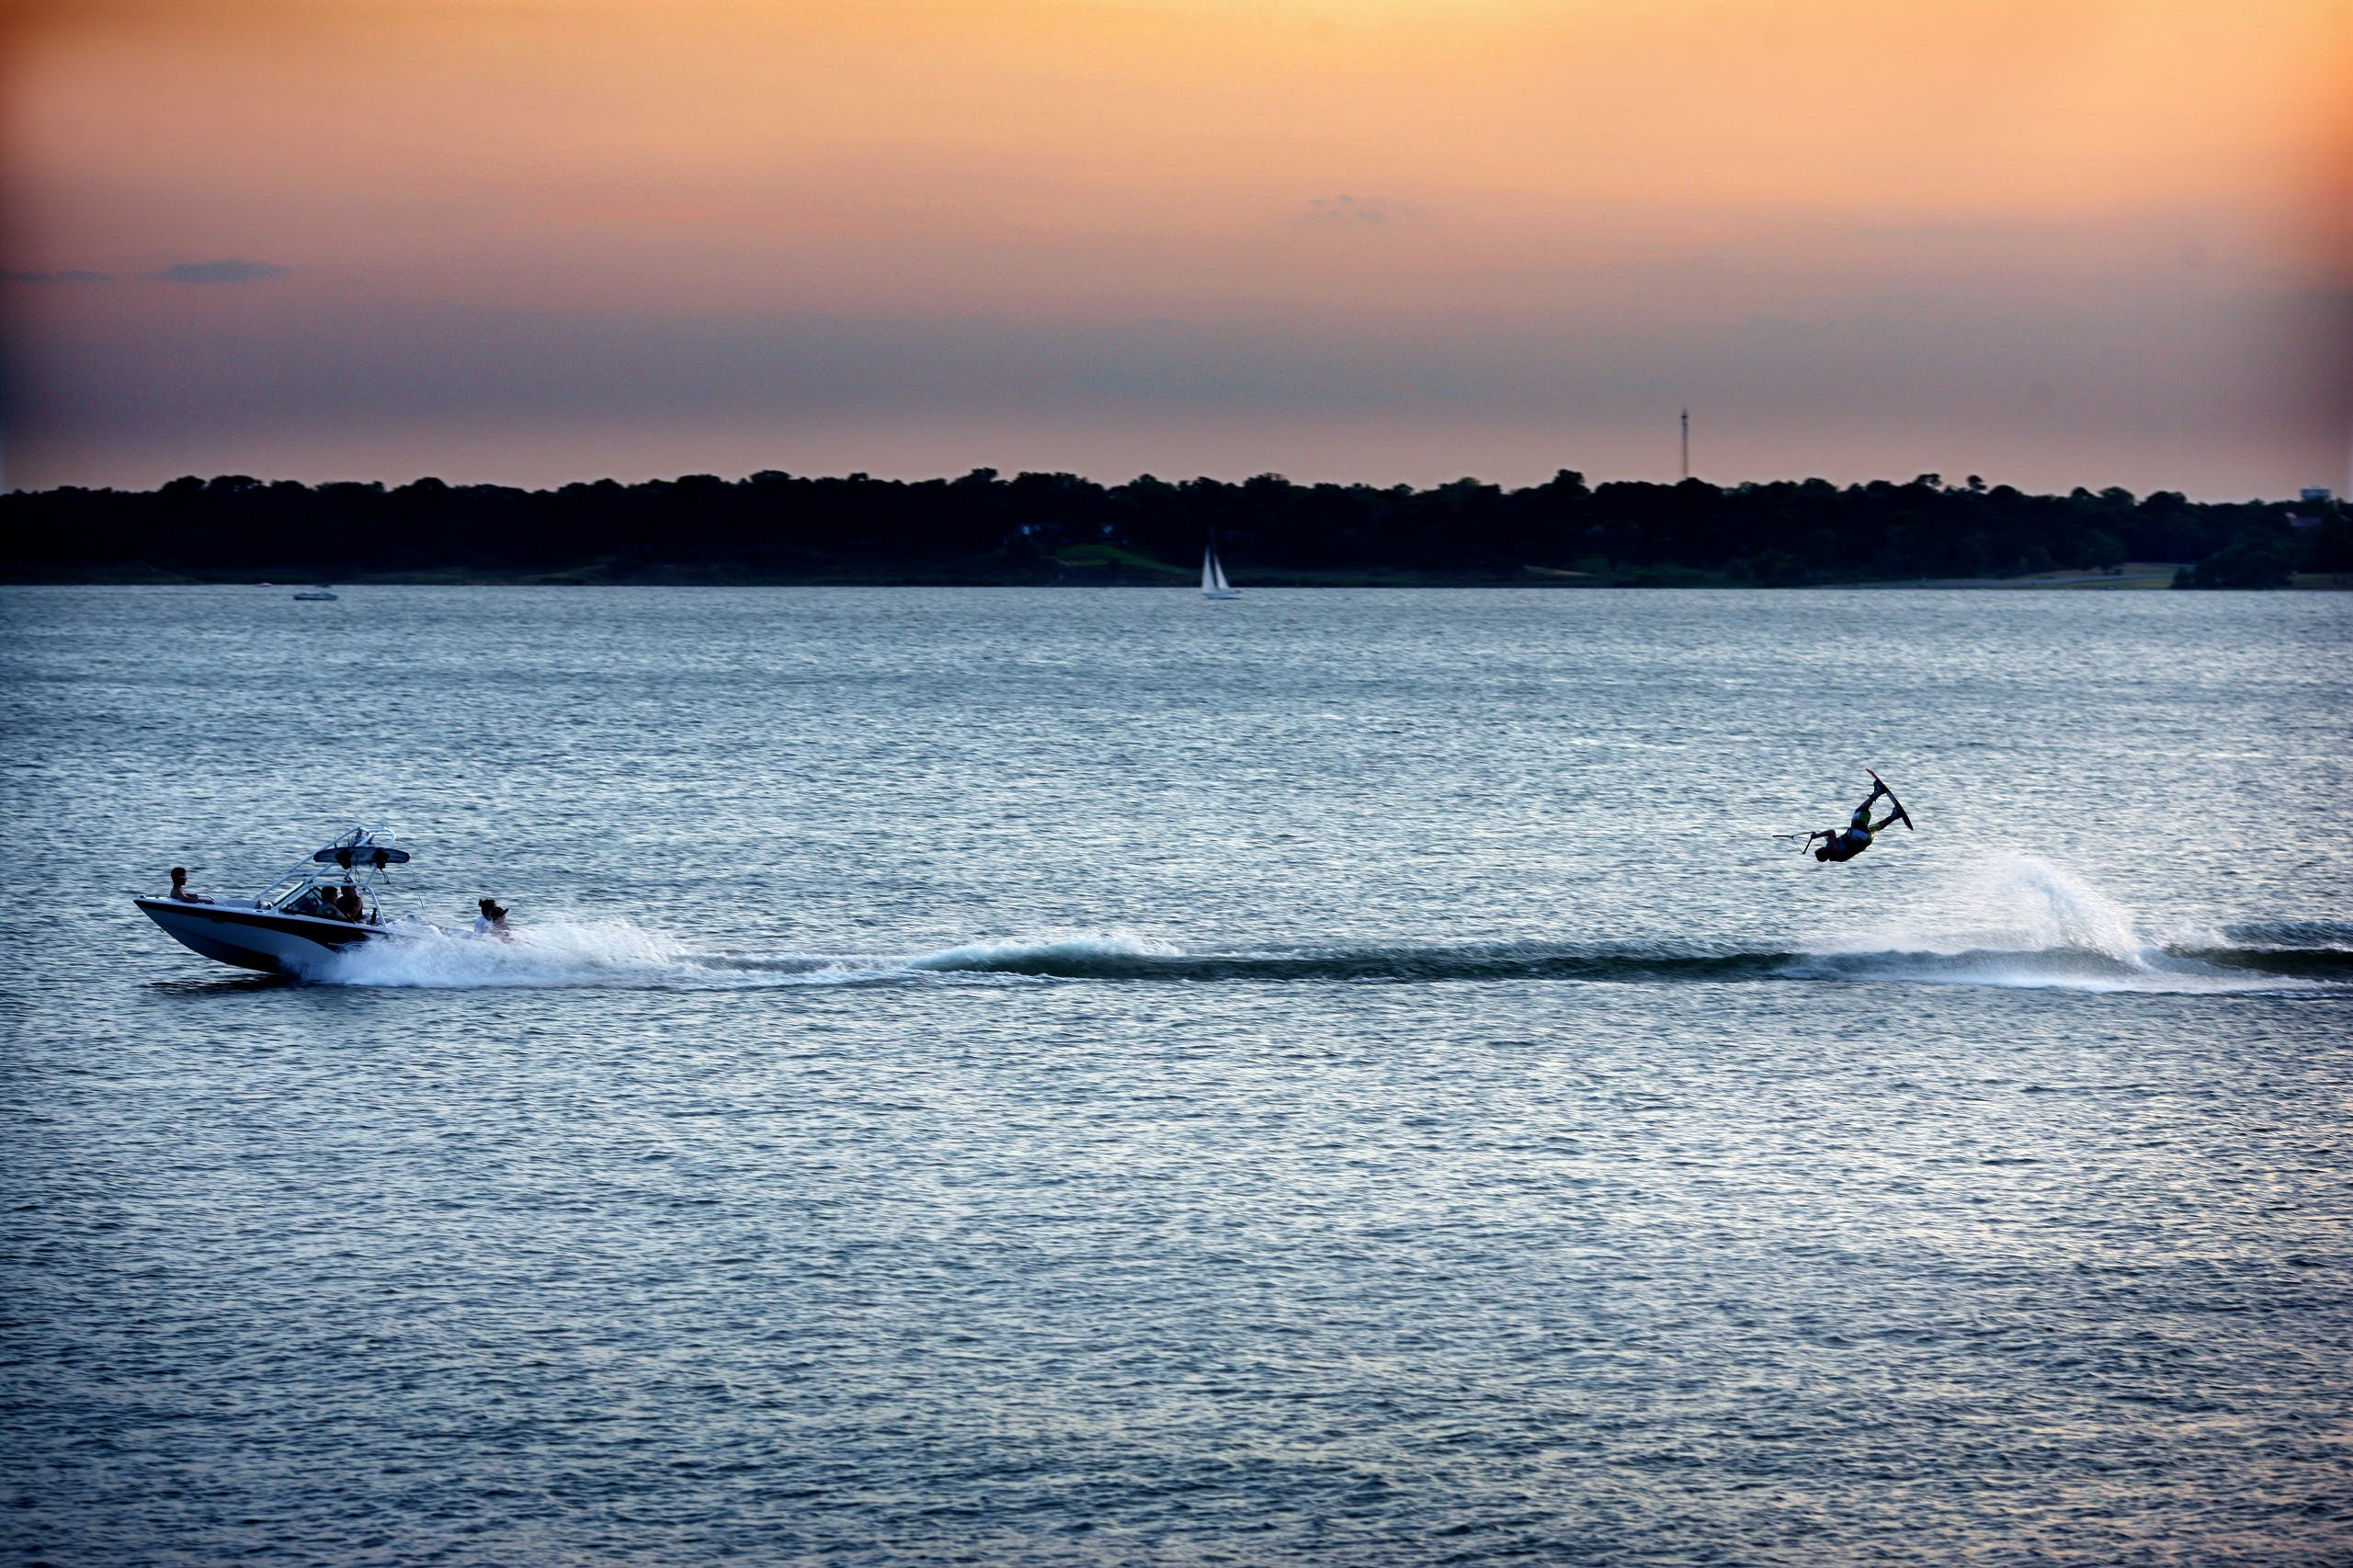 A lake at sunset with a boat racing across the water pulling a man on a wakeboard